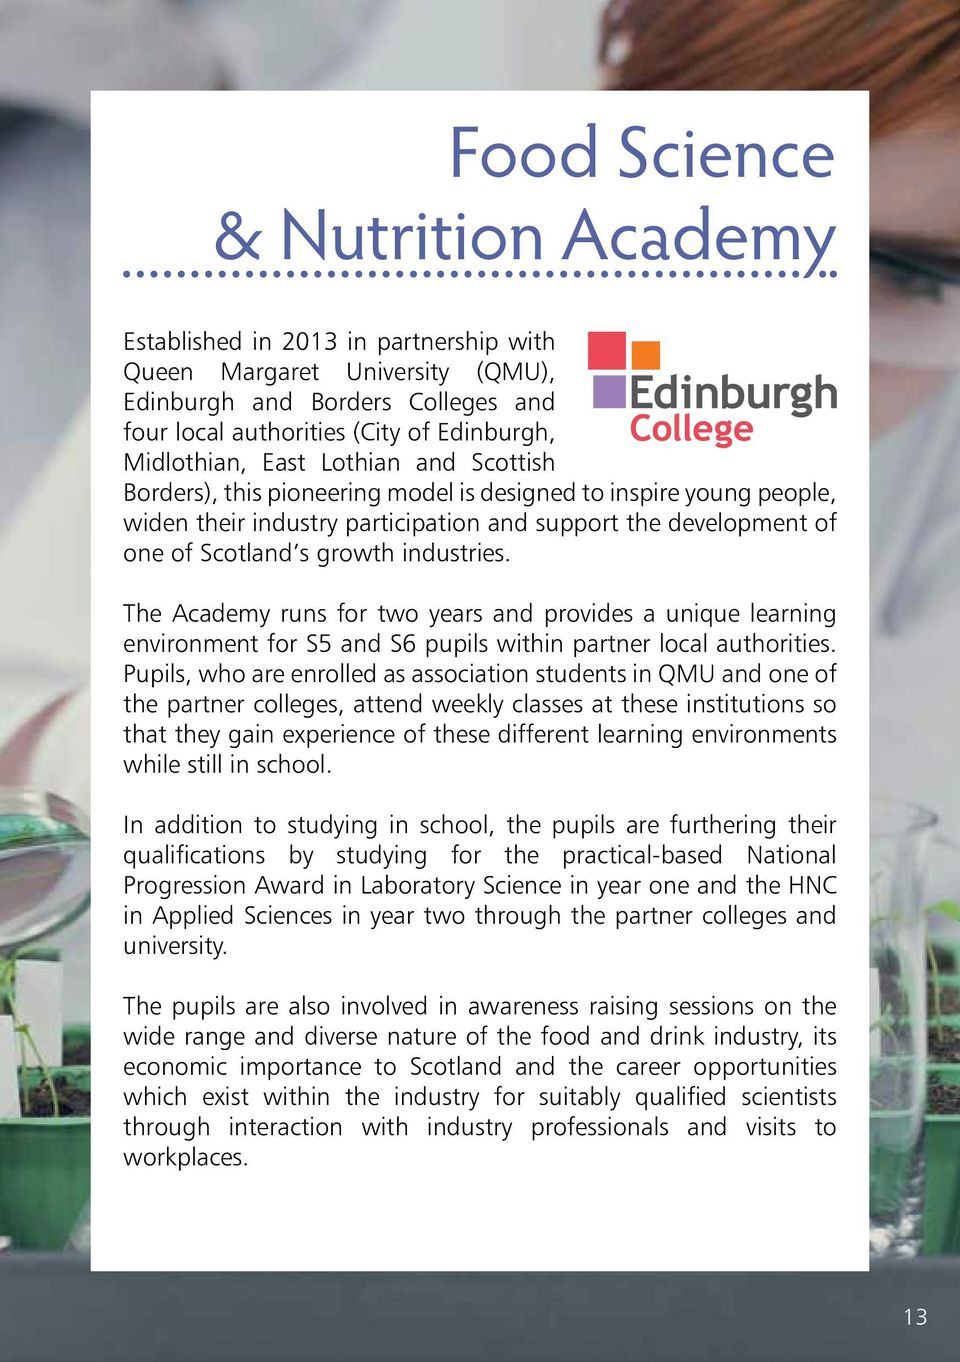 The Academy runs for two years and provides a unique learning environment for S5 and S6 pupils within partner local authorities.